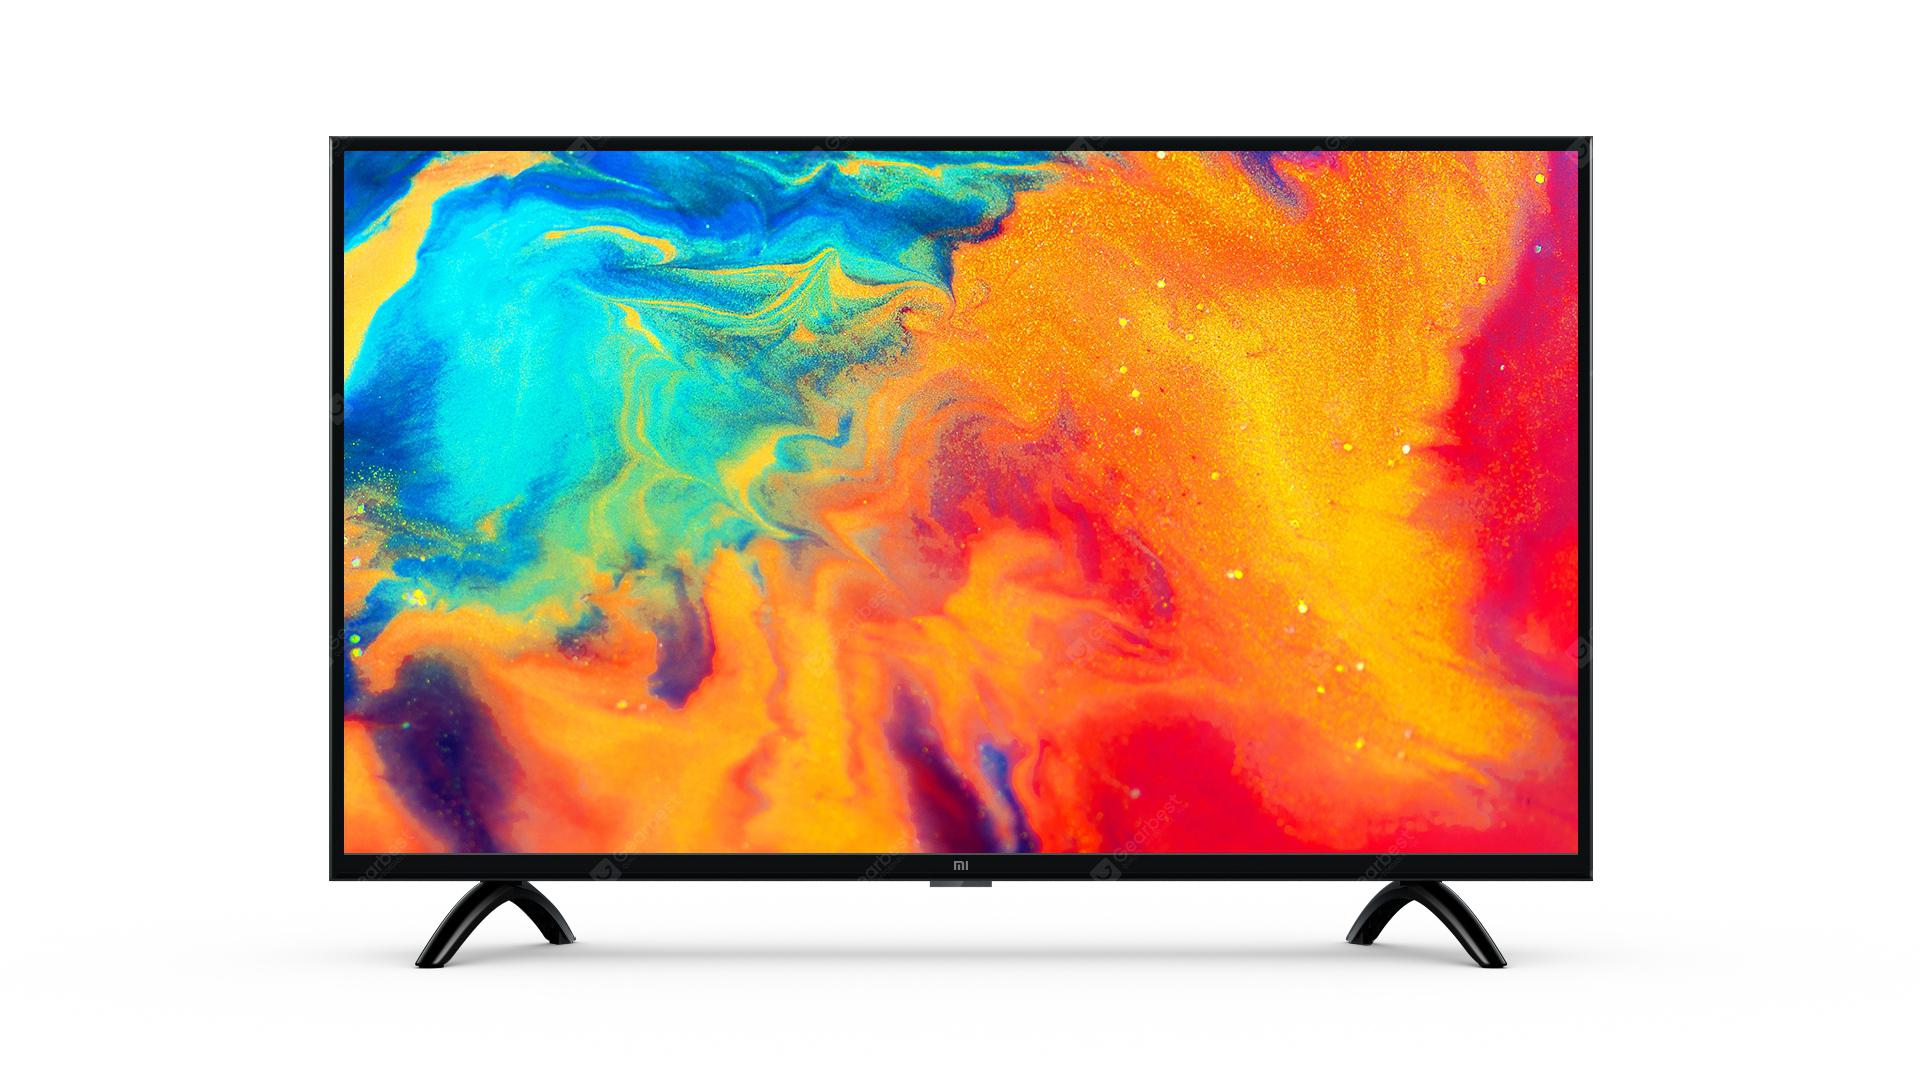 Xiaomi Mi LED TV 4A PRO 32 Smartest Andr